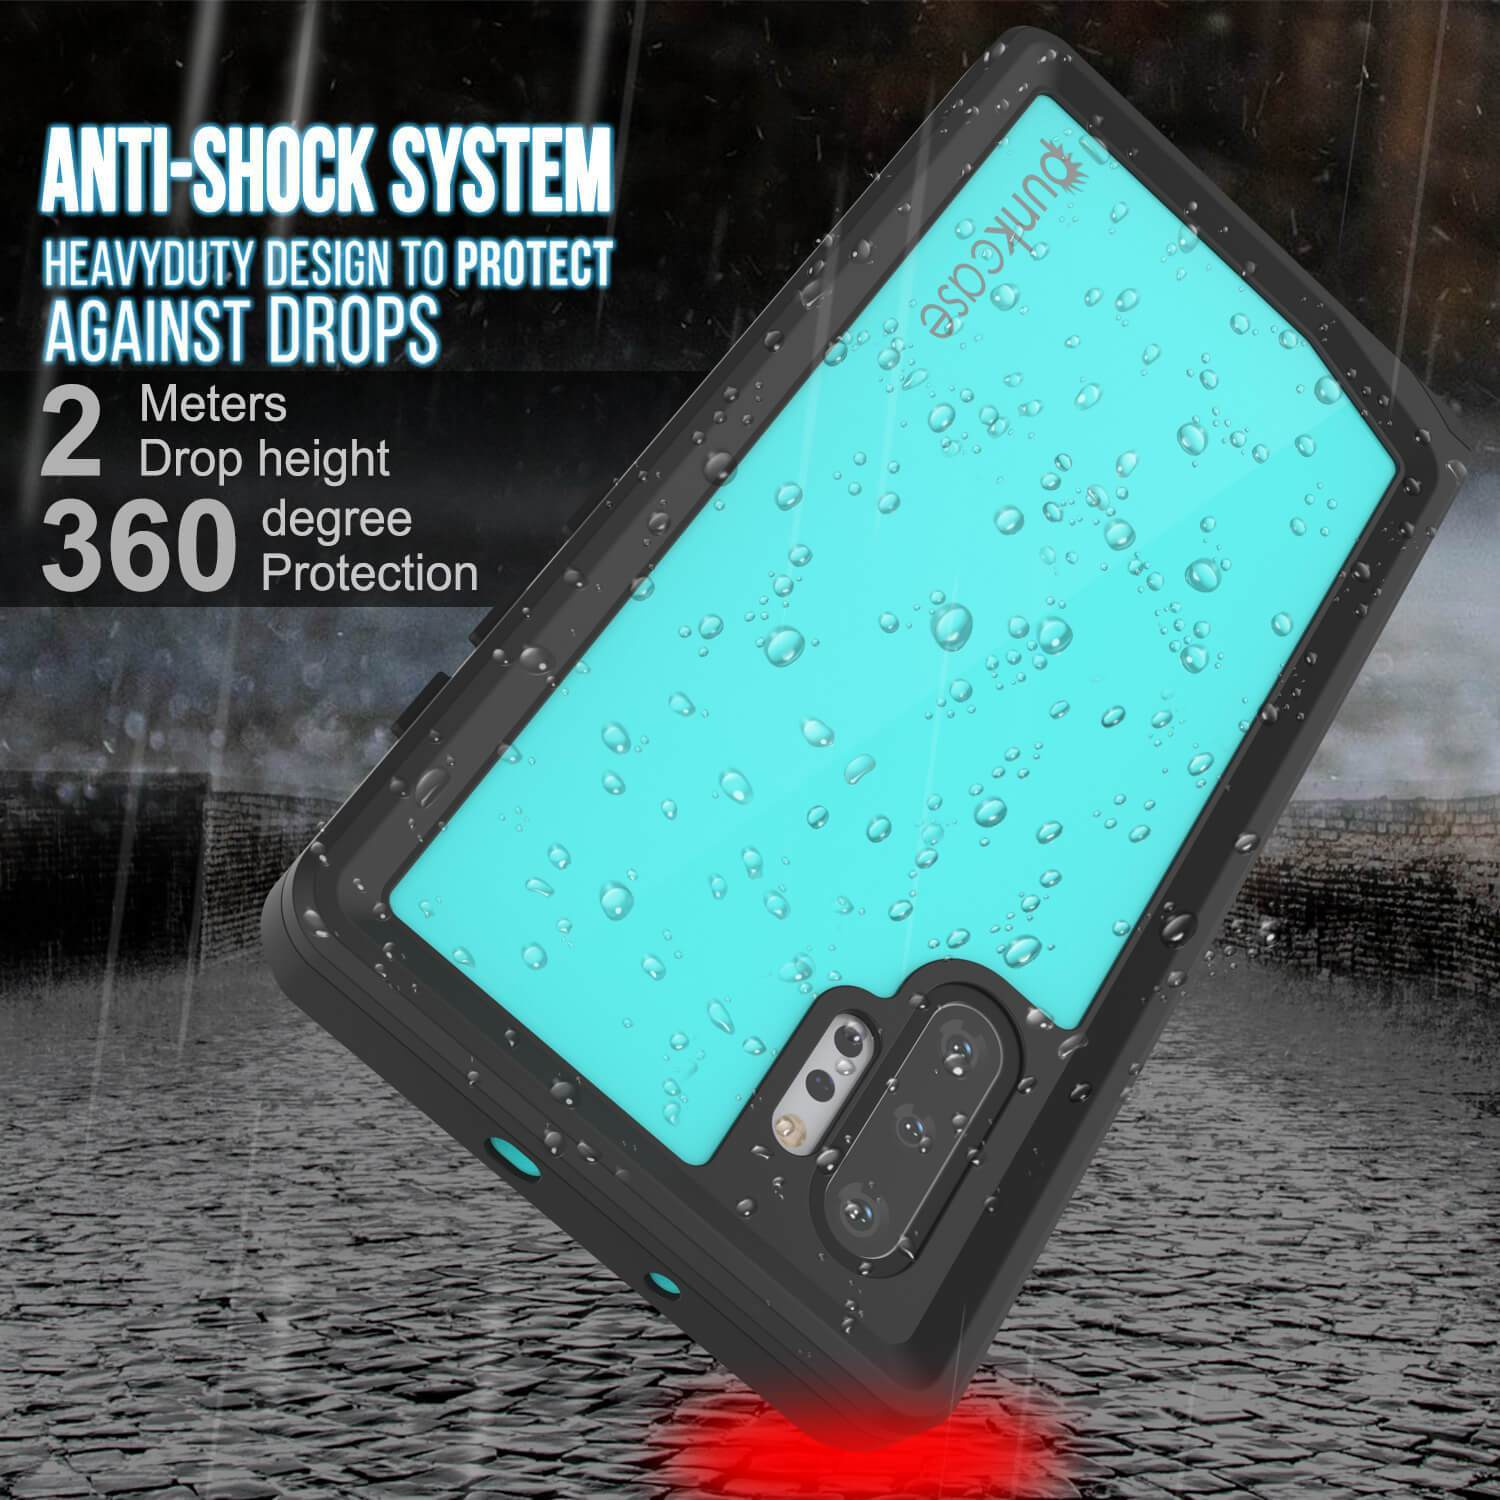 Galaxy Note 10+ Plus Waterproof Case, Punkcase Studstar Series Teal Thin Armor Cover